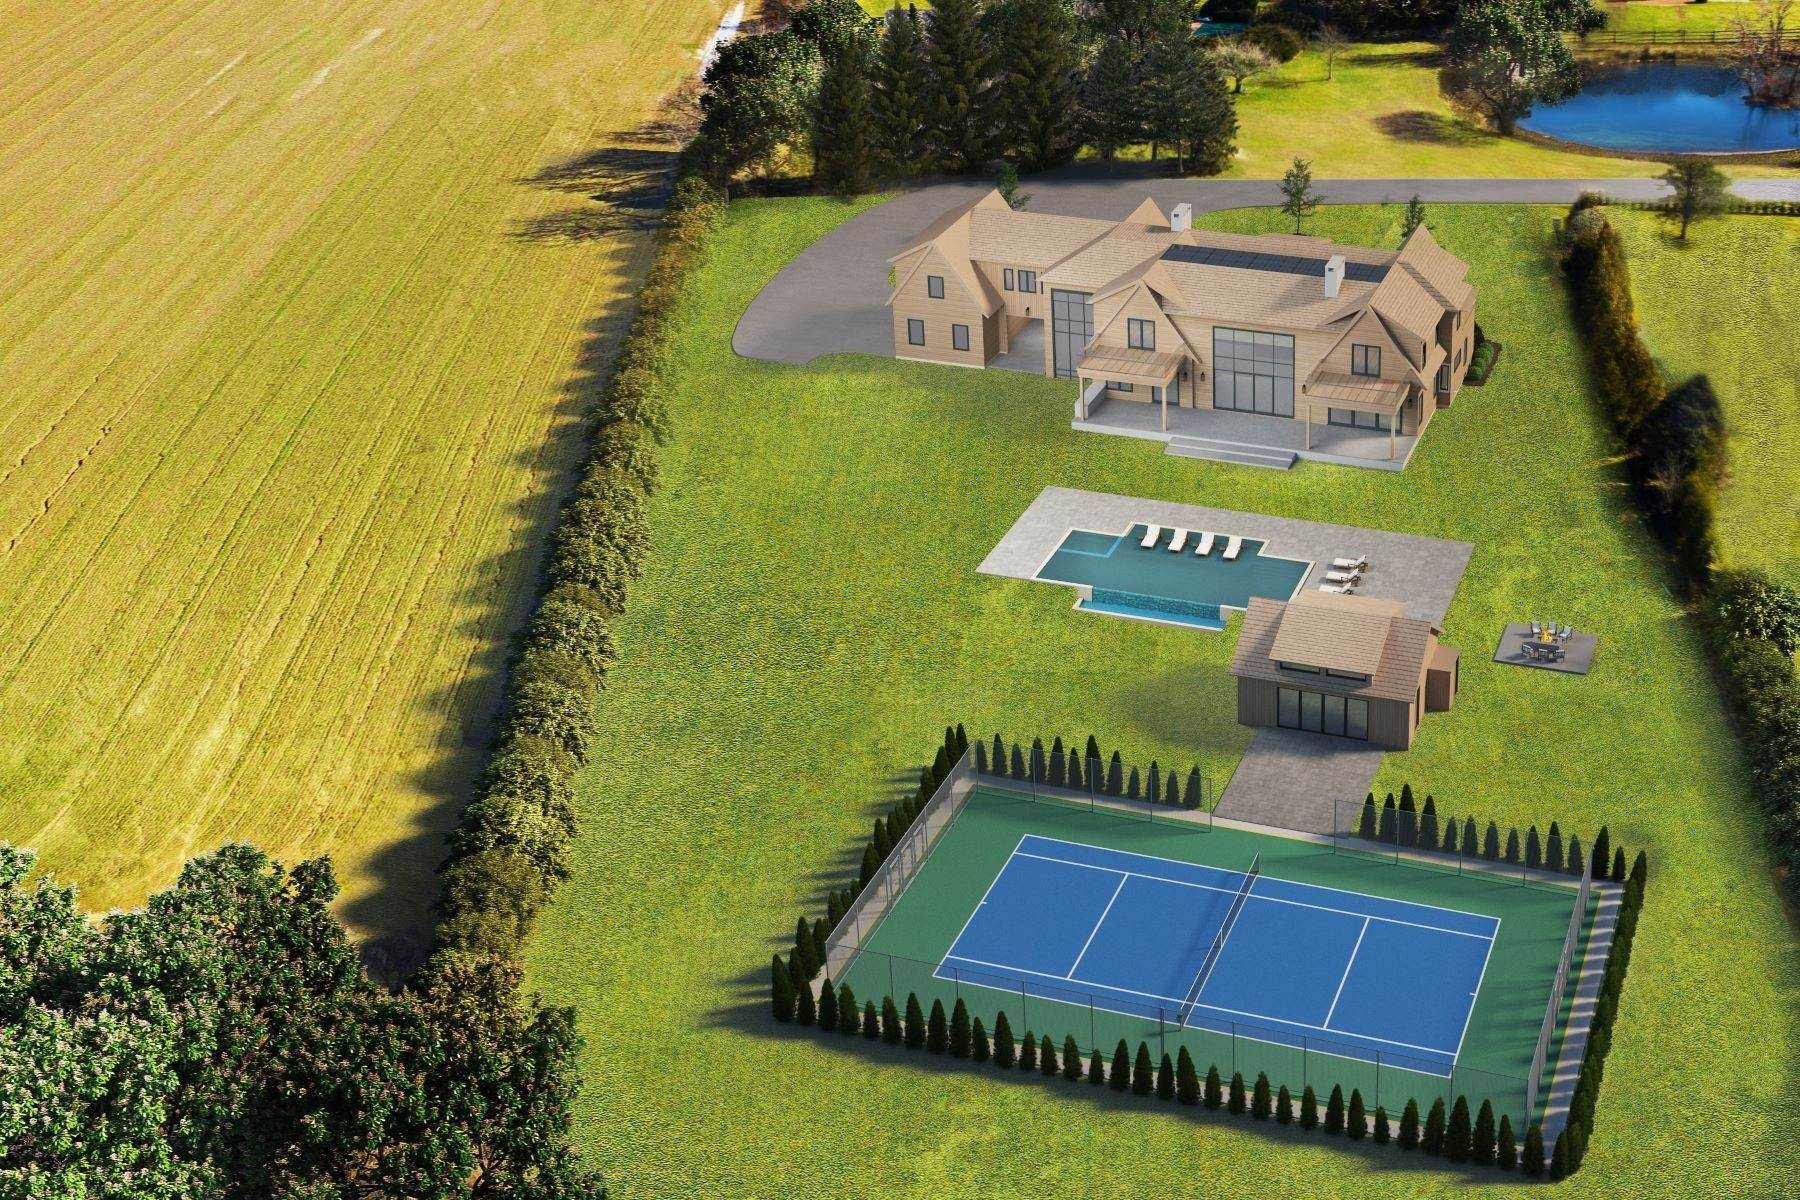 Property for Sale at Modern New Construction,Field&Pond Views 65 Ellen Court Bridgehampton, New York 11932 United States